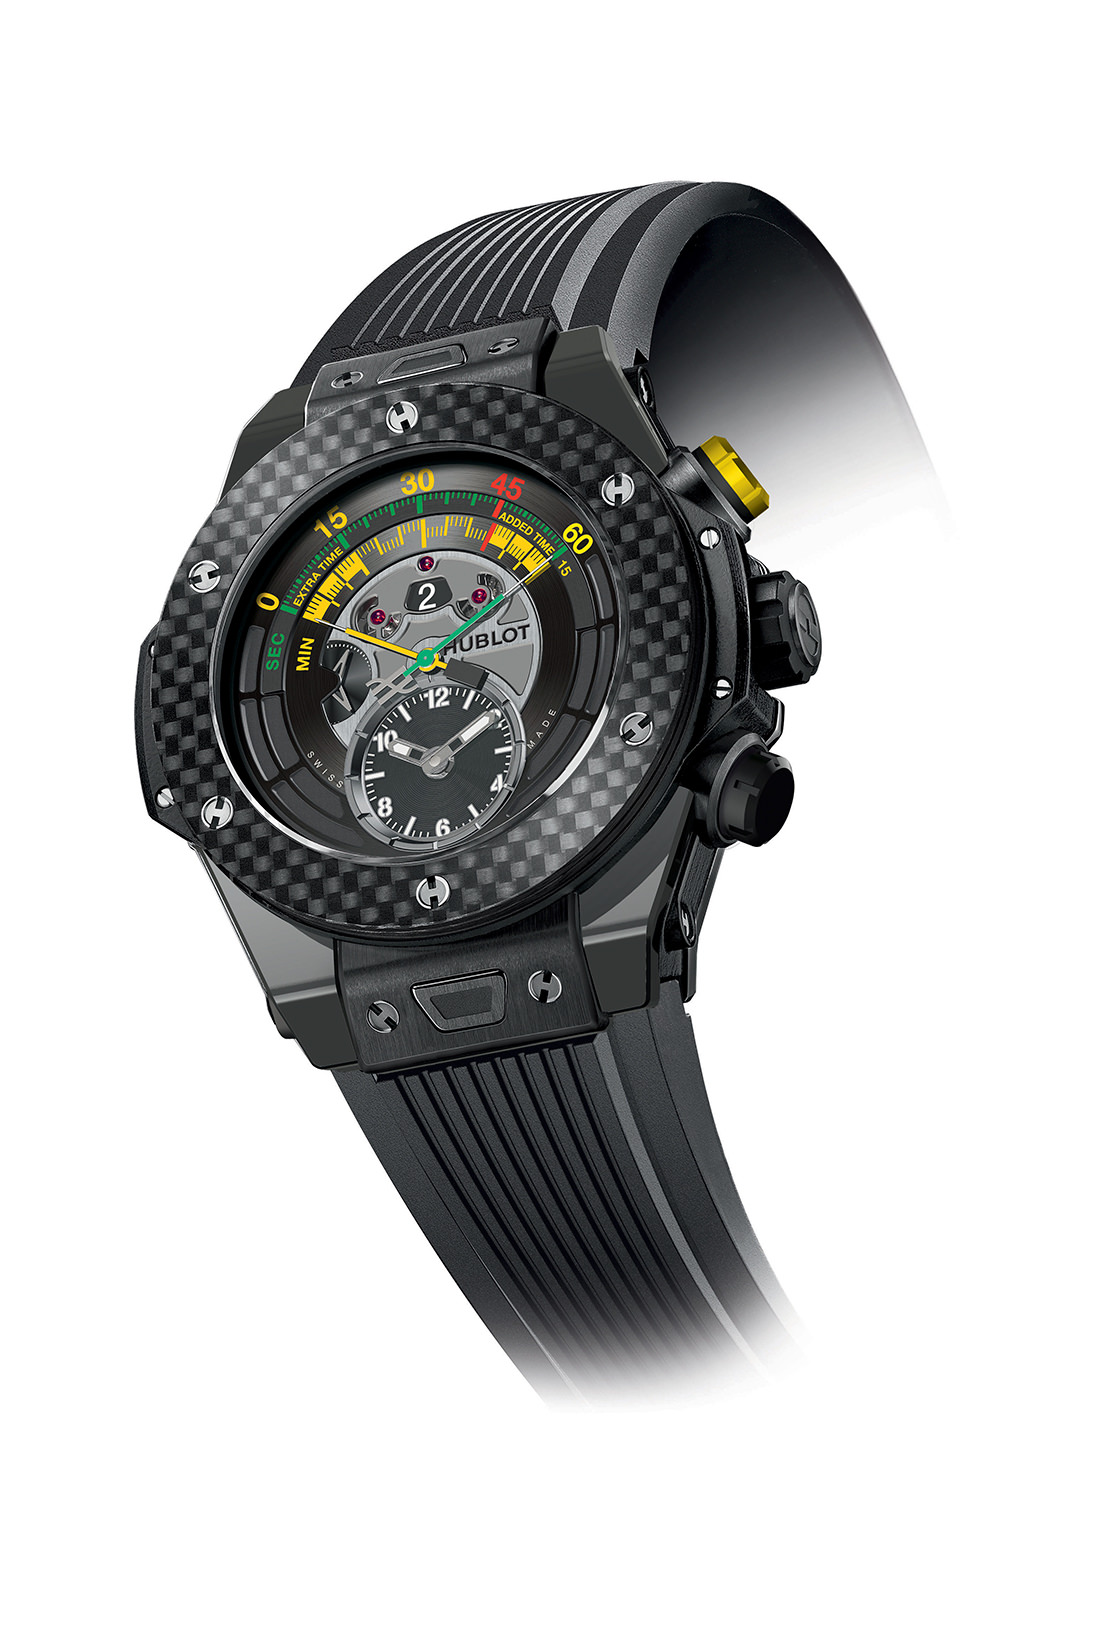 hublot-big-bang-unico-chrono-bi-retrograde-4